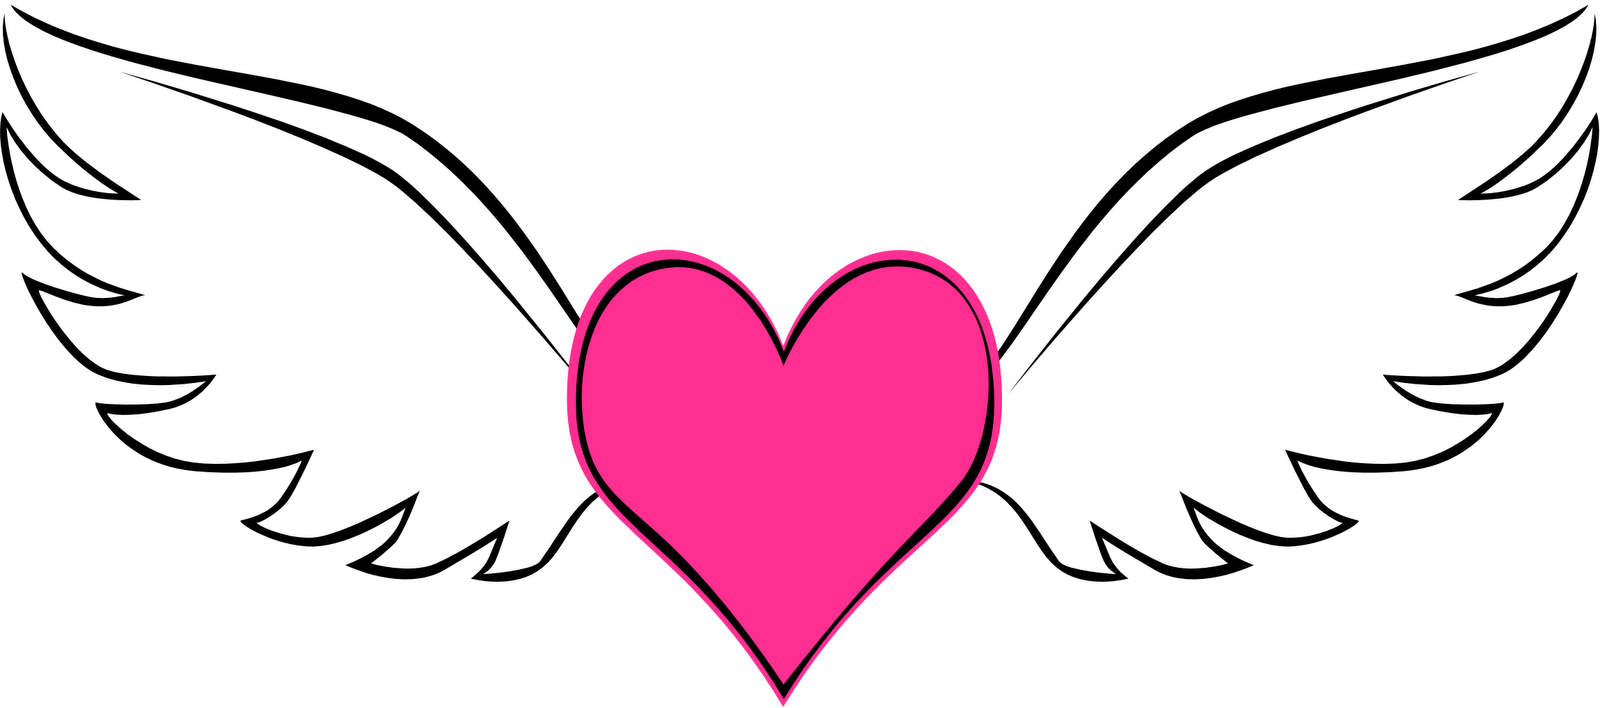 Heart tattoo png. Simple tattoos transparentpng image